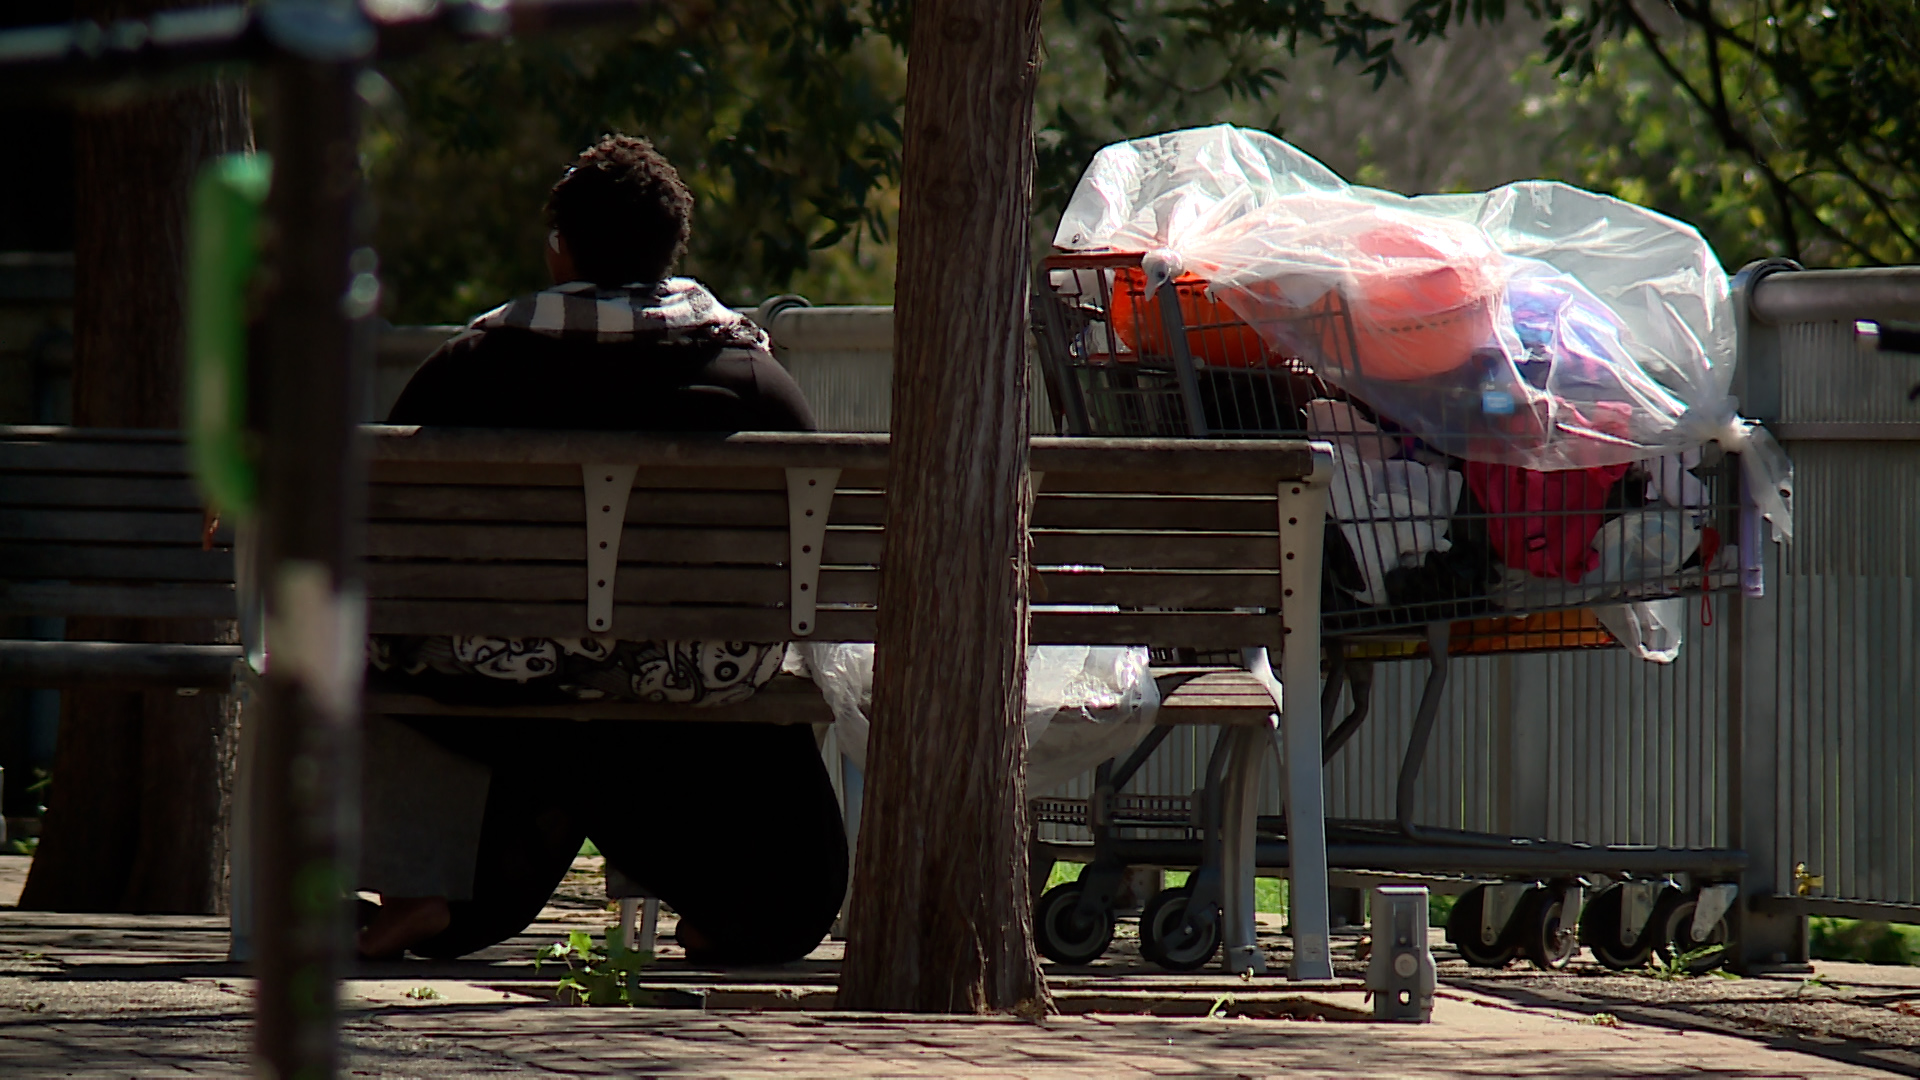 Homelessness in Downtown Austin